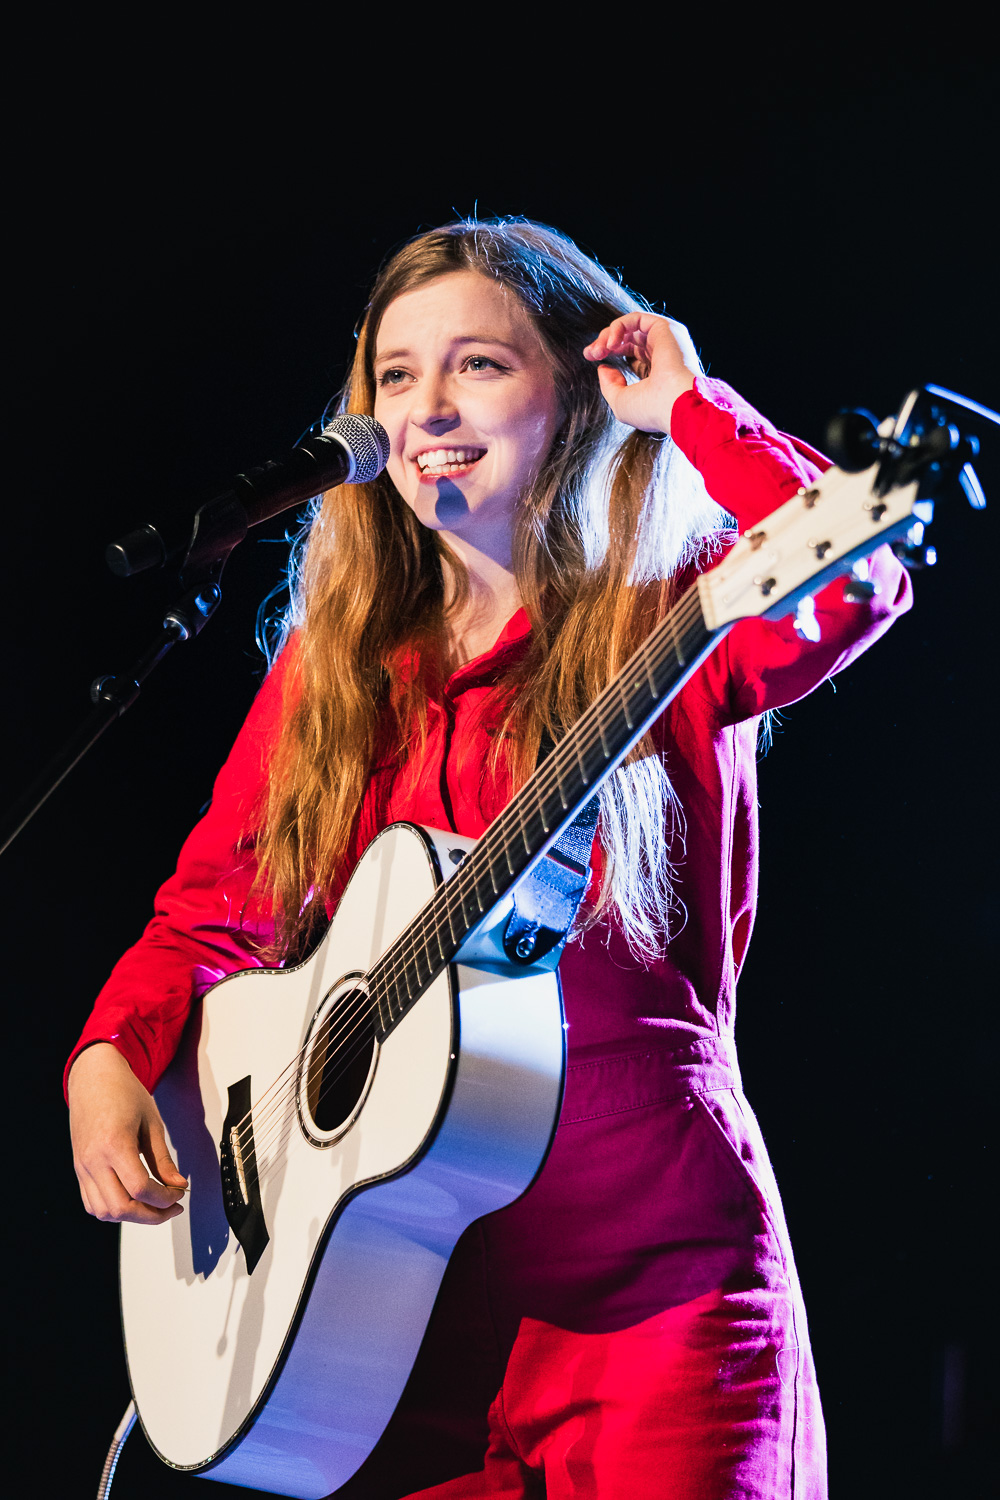 Thanking the crowd for their warm presence and gives a shares a nervous giggle, Jade Bird on stage in SLC. Photo: @Lmsorenson